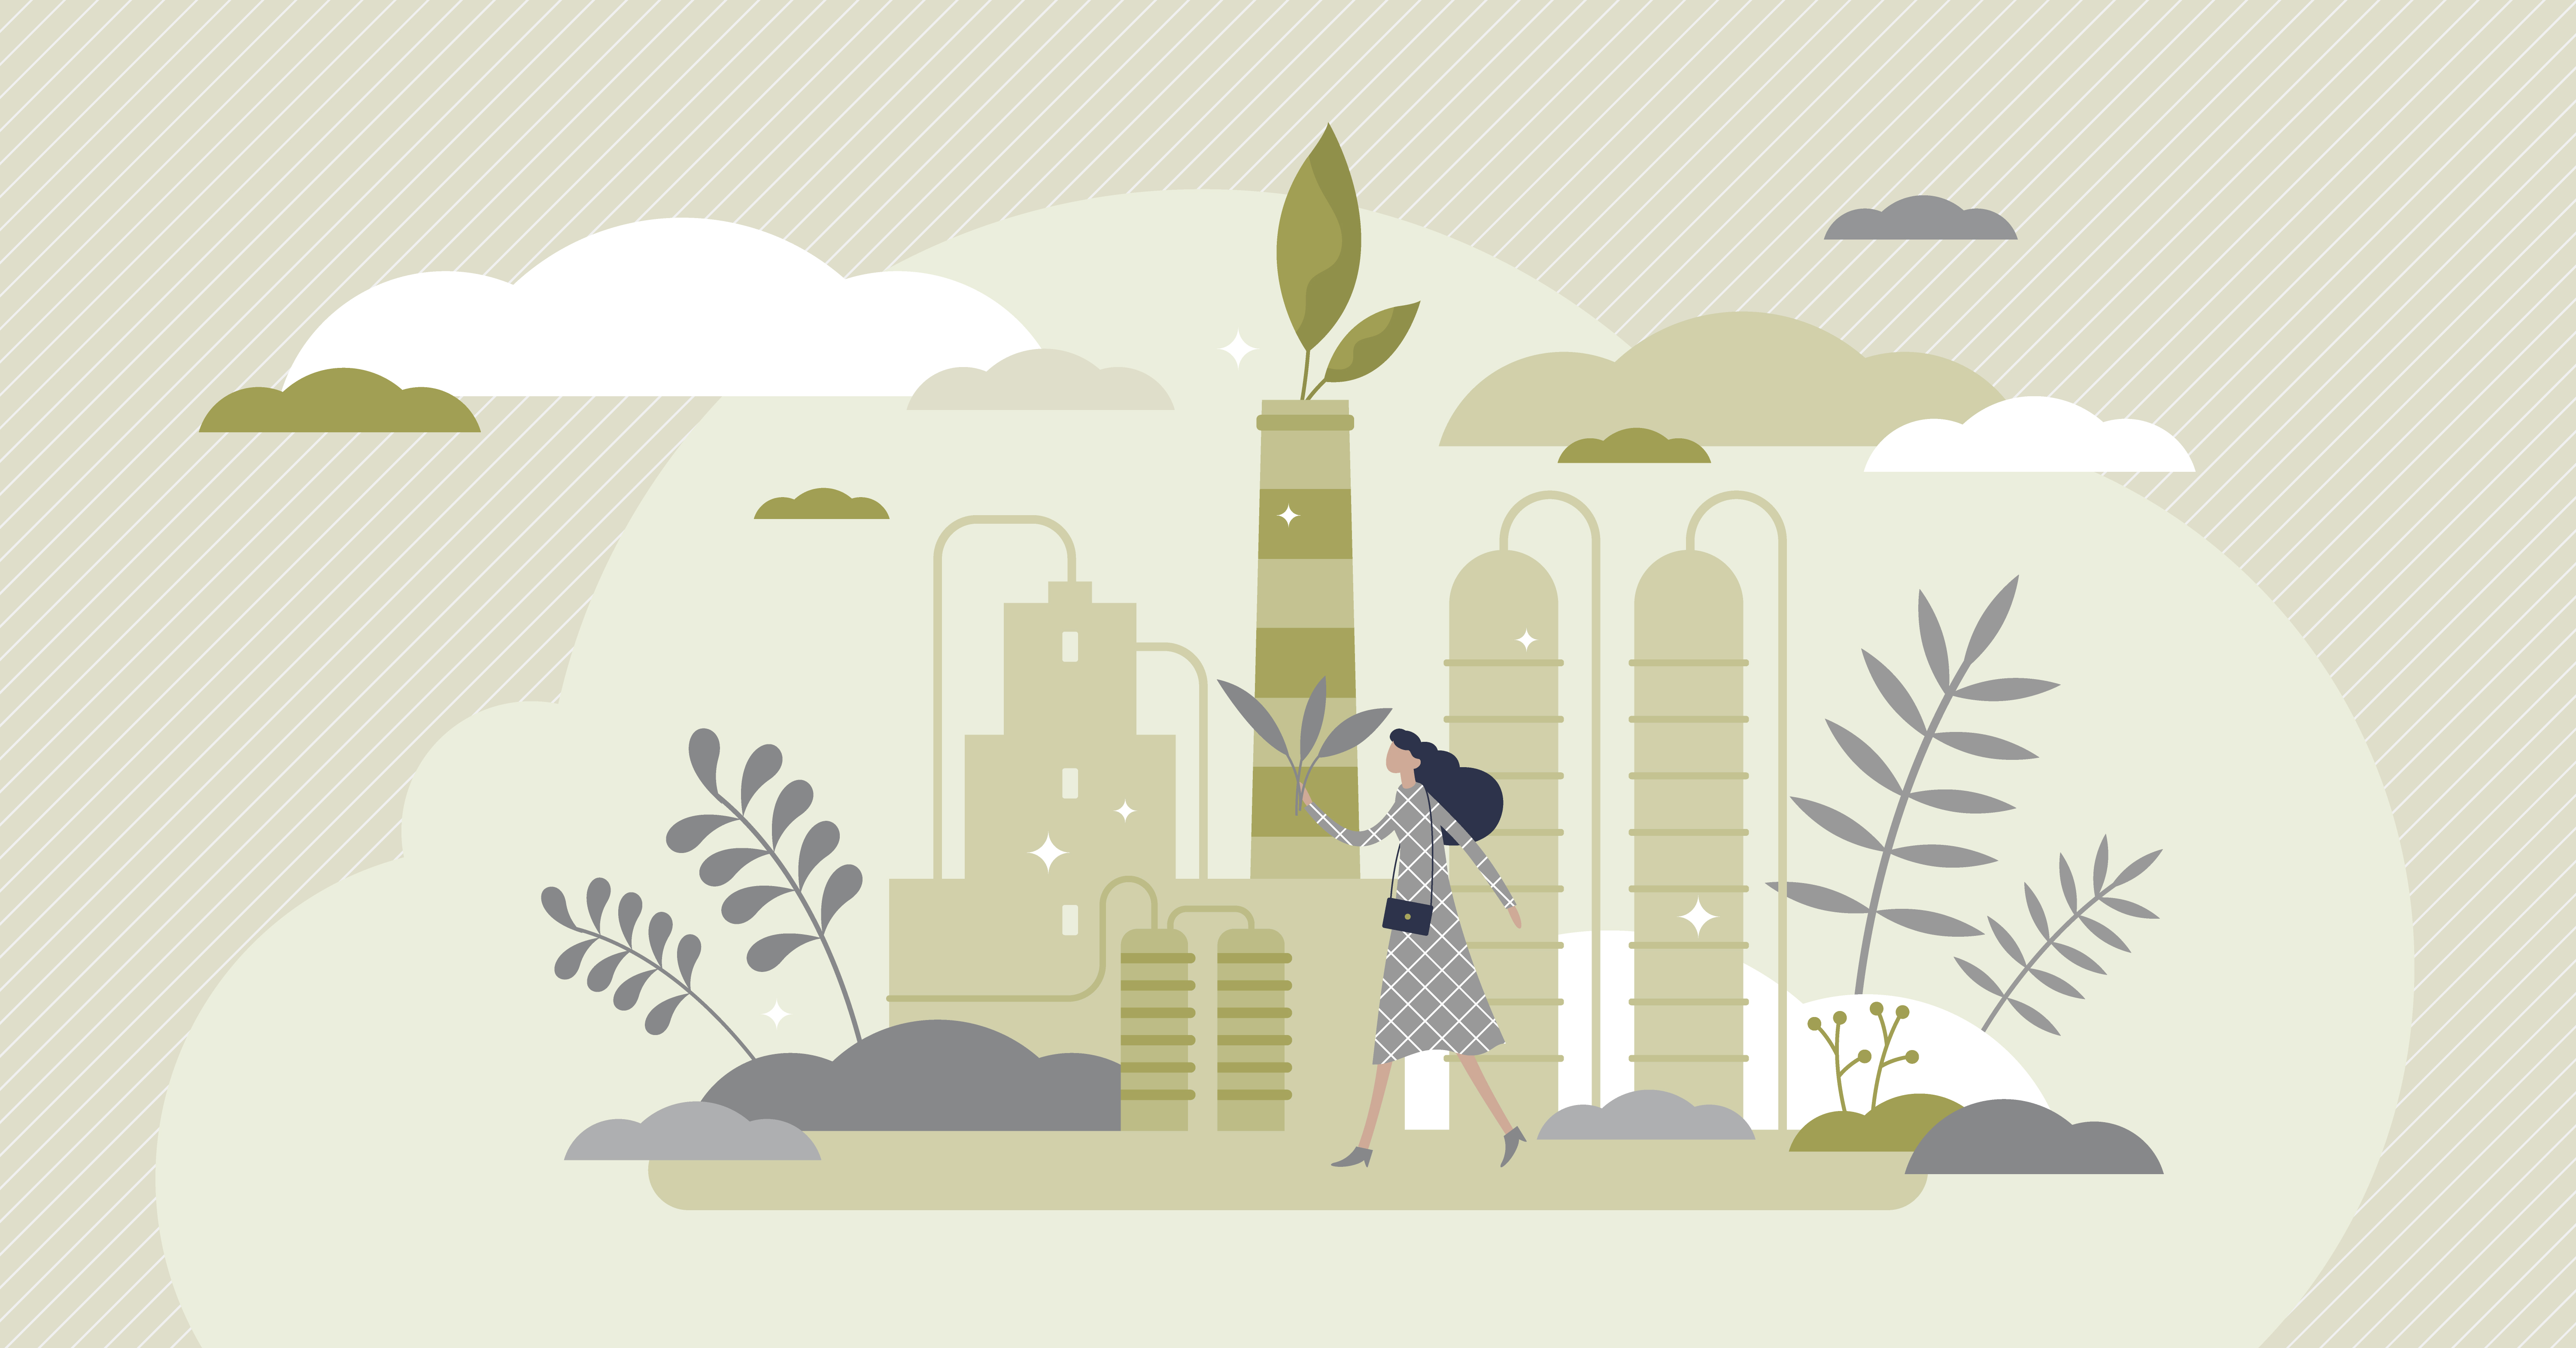 5 Easy Ways to Reduce Your Business Carbon Footprint